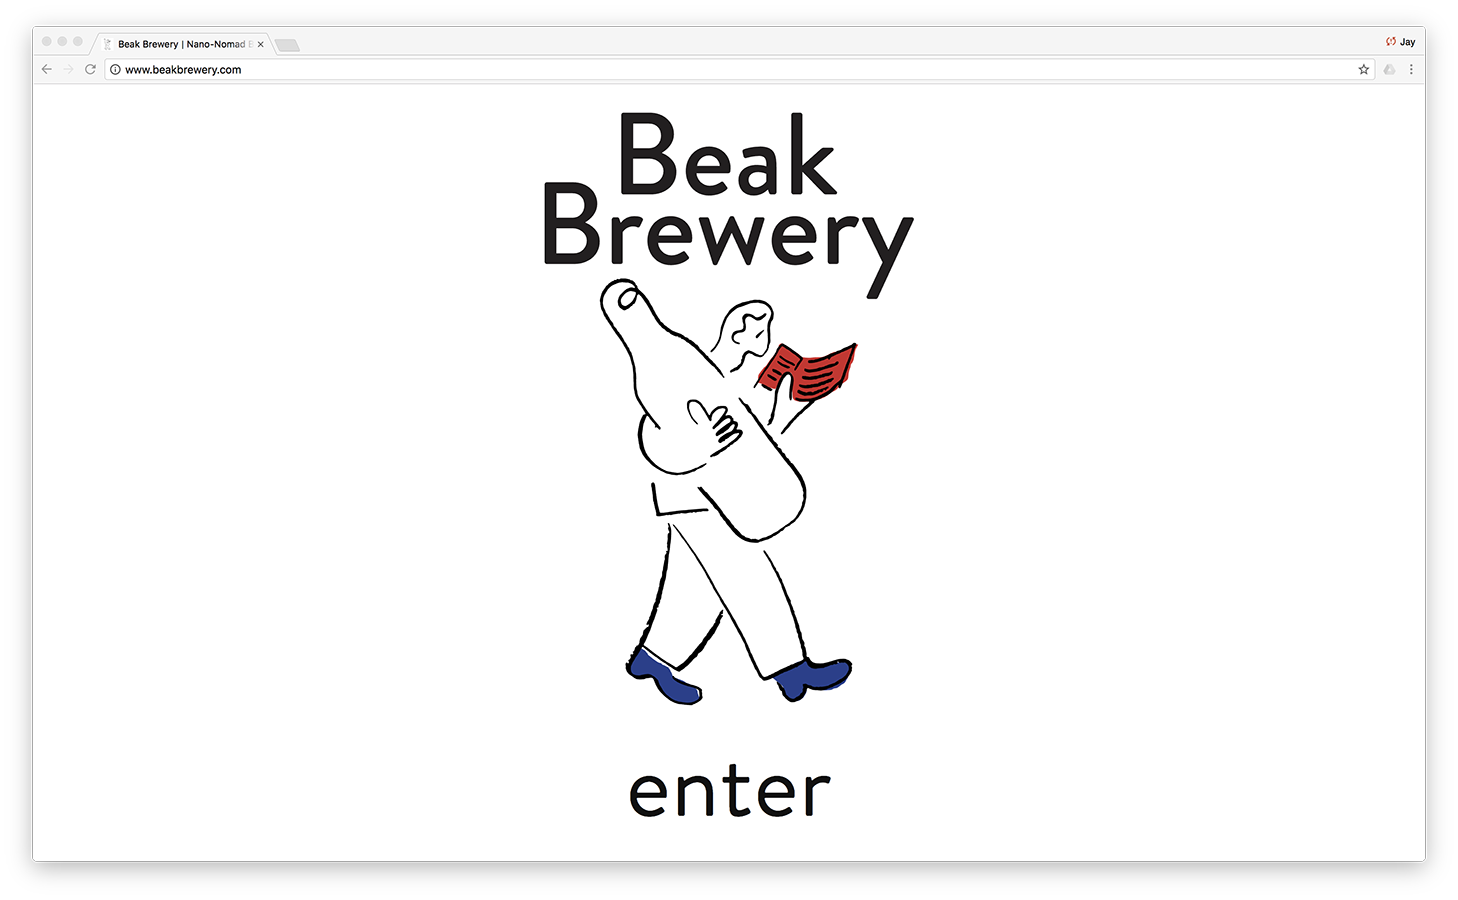 Beak Brewery